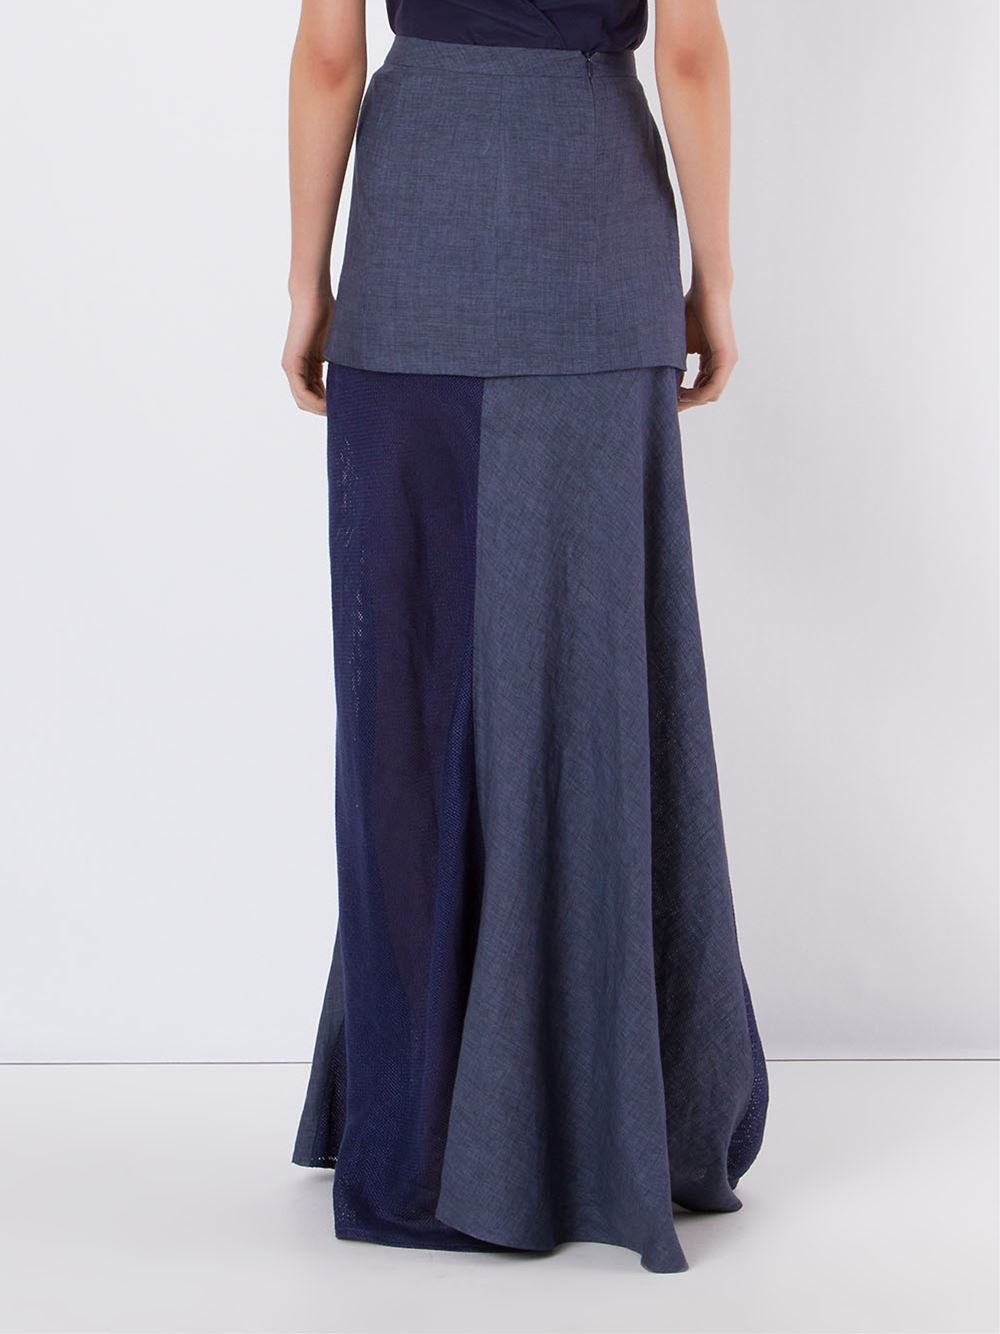 giuliana romanno panel layered skirt in blue lyst